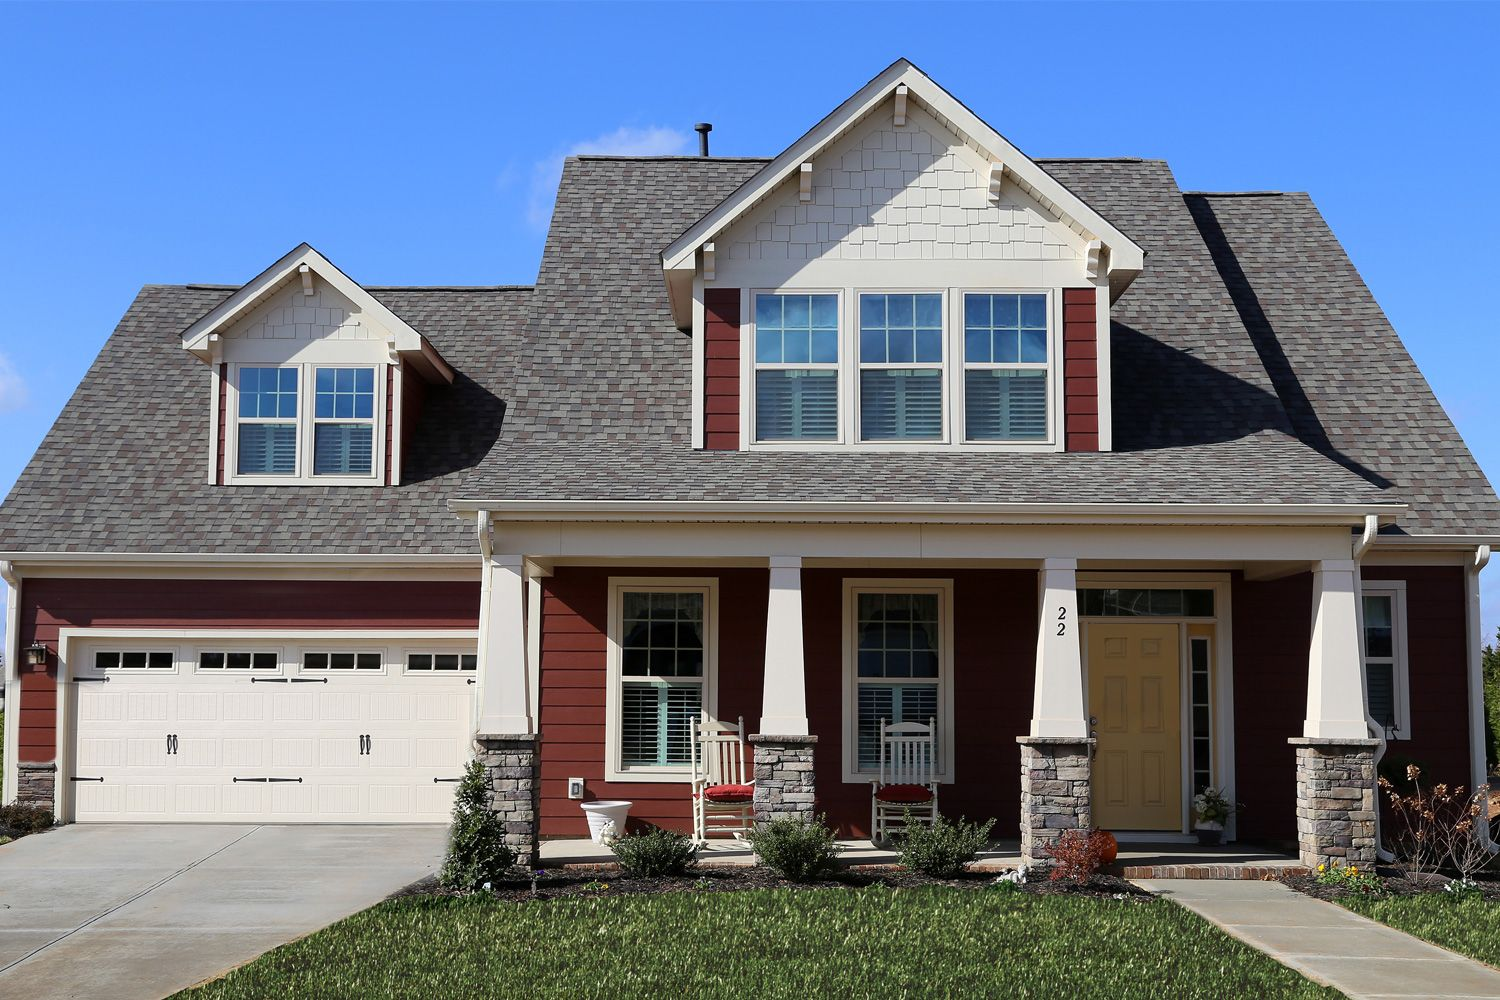 Single Family for Sale at Cooper 3 507 Palladio Drive Greenville, South Carolina 29617 United States